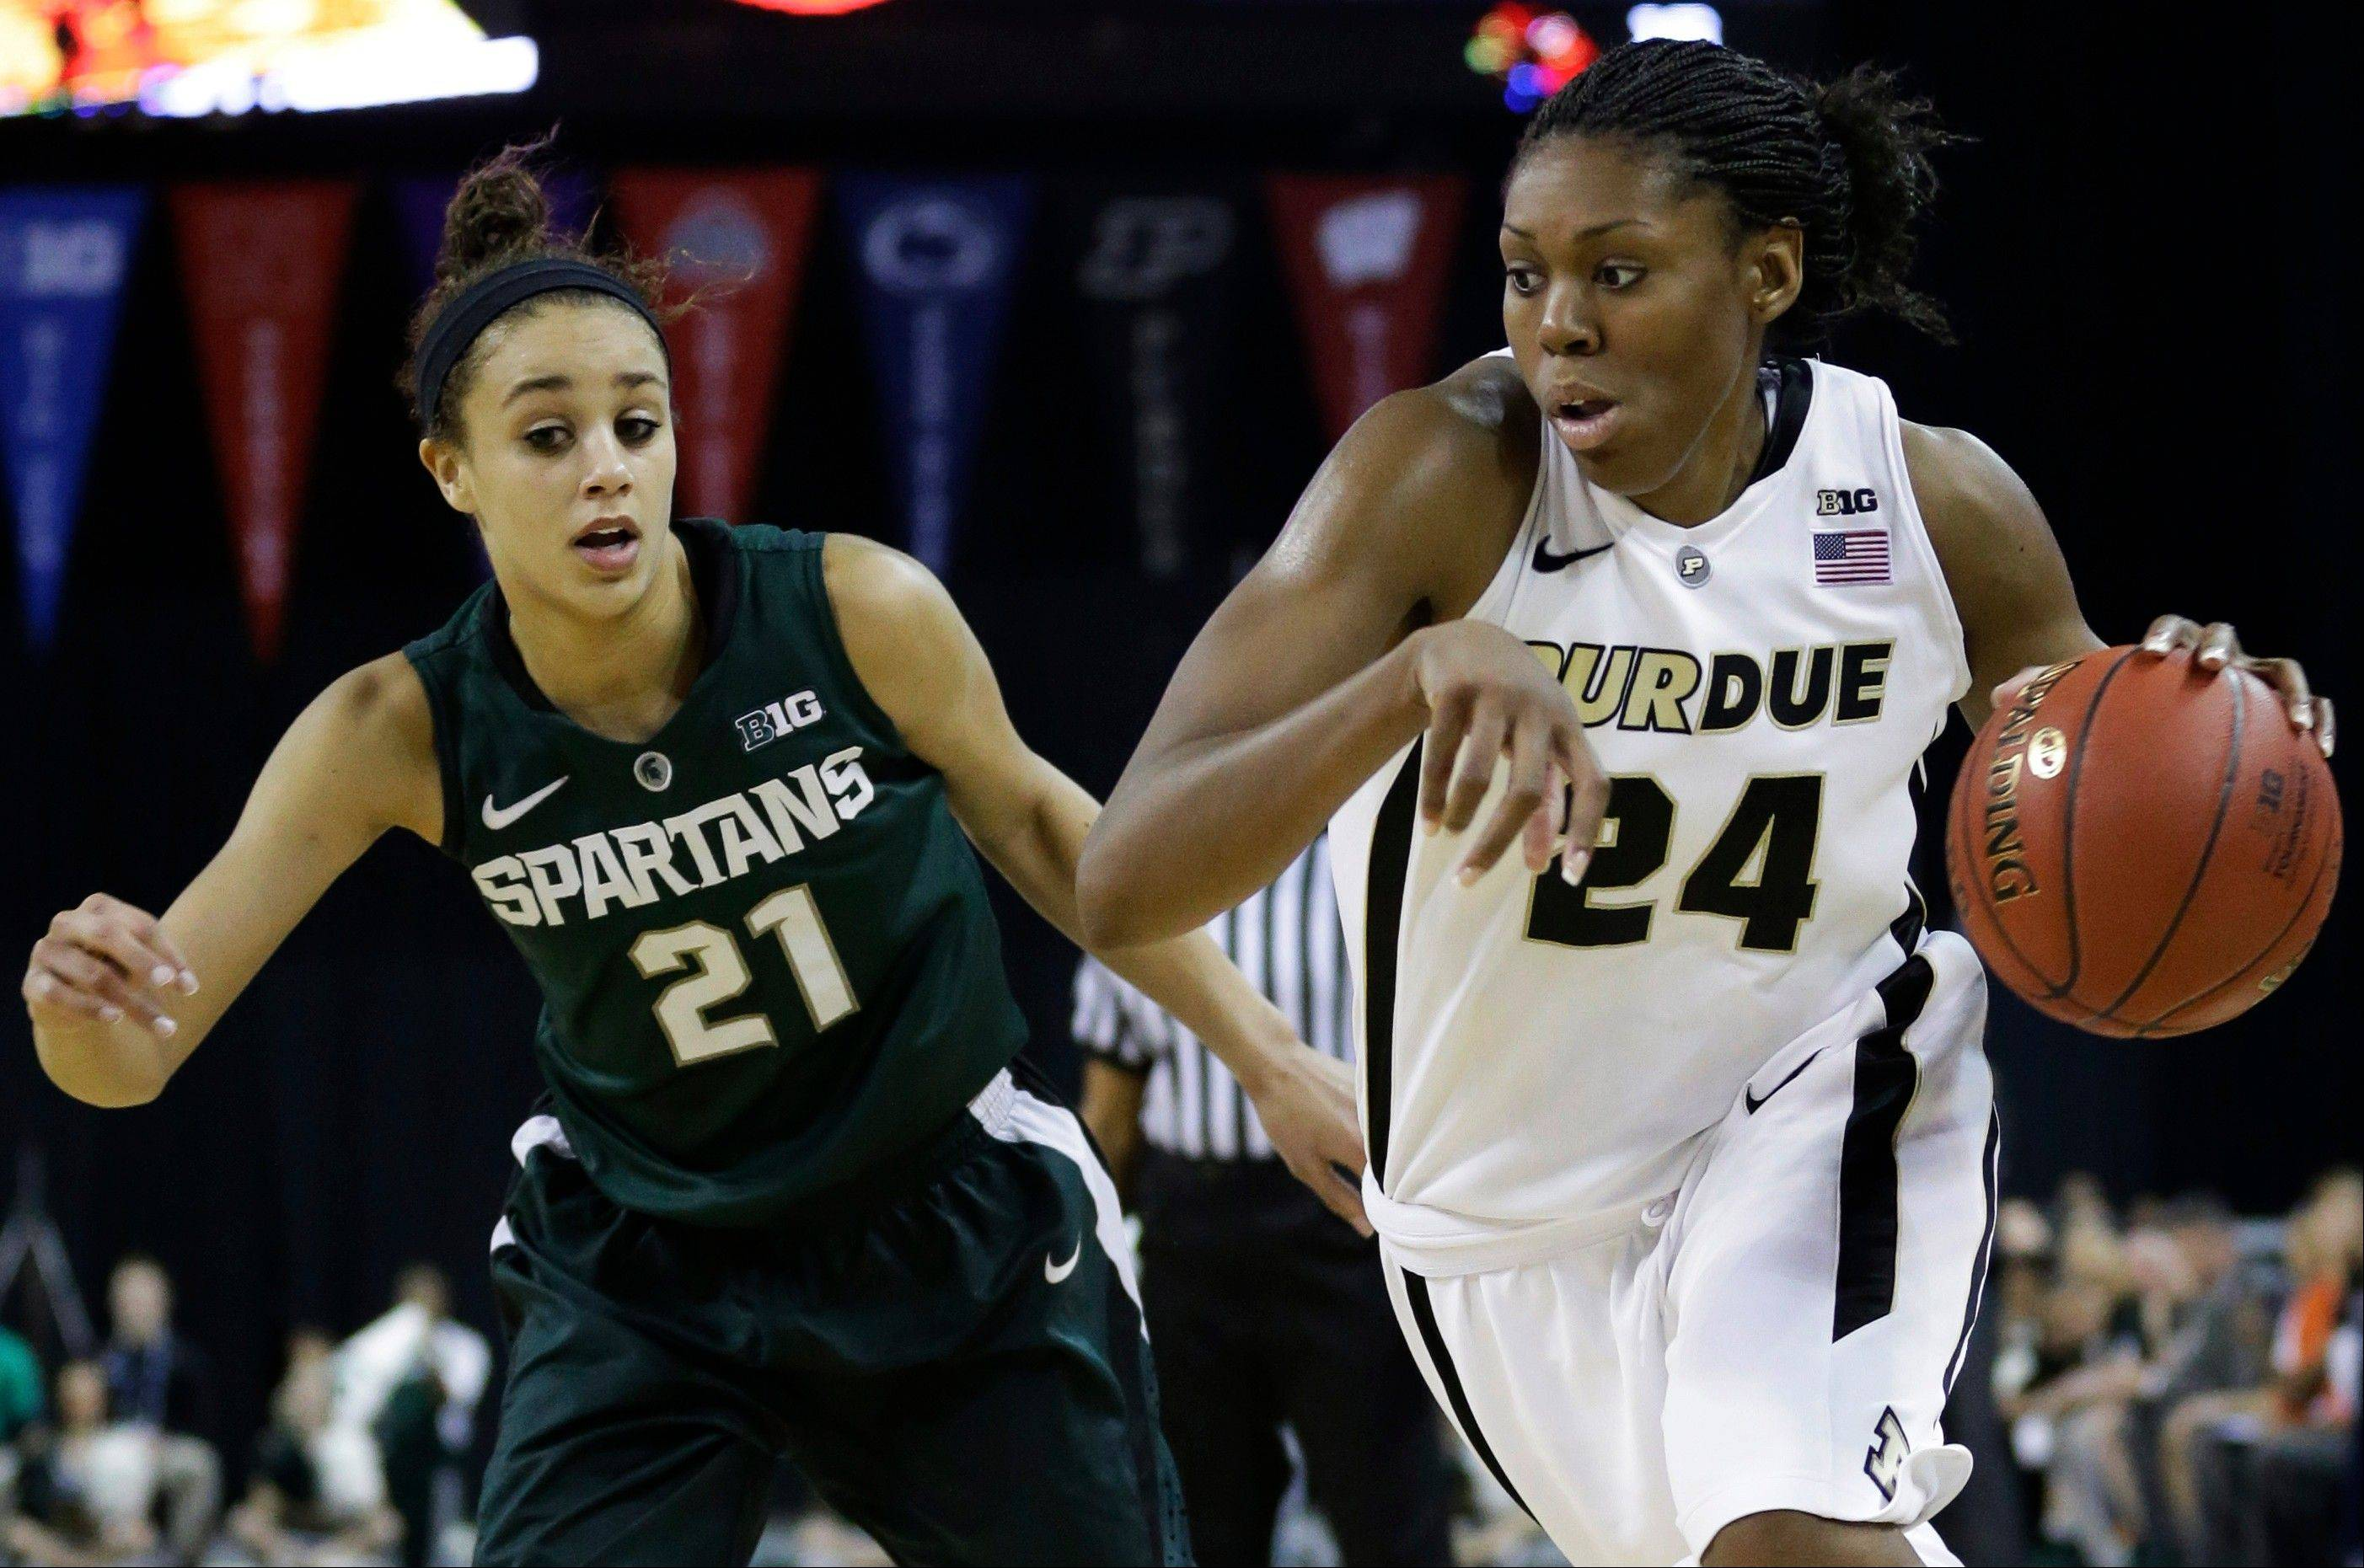 Purdue forward Drey Mingo, right, earned Most Outstanding Player honors at last week's Big Ten women's basketball tournament. Mingo, who wears hearing aids, also directs a foundation that assists children with hearing loss.